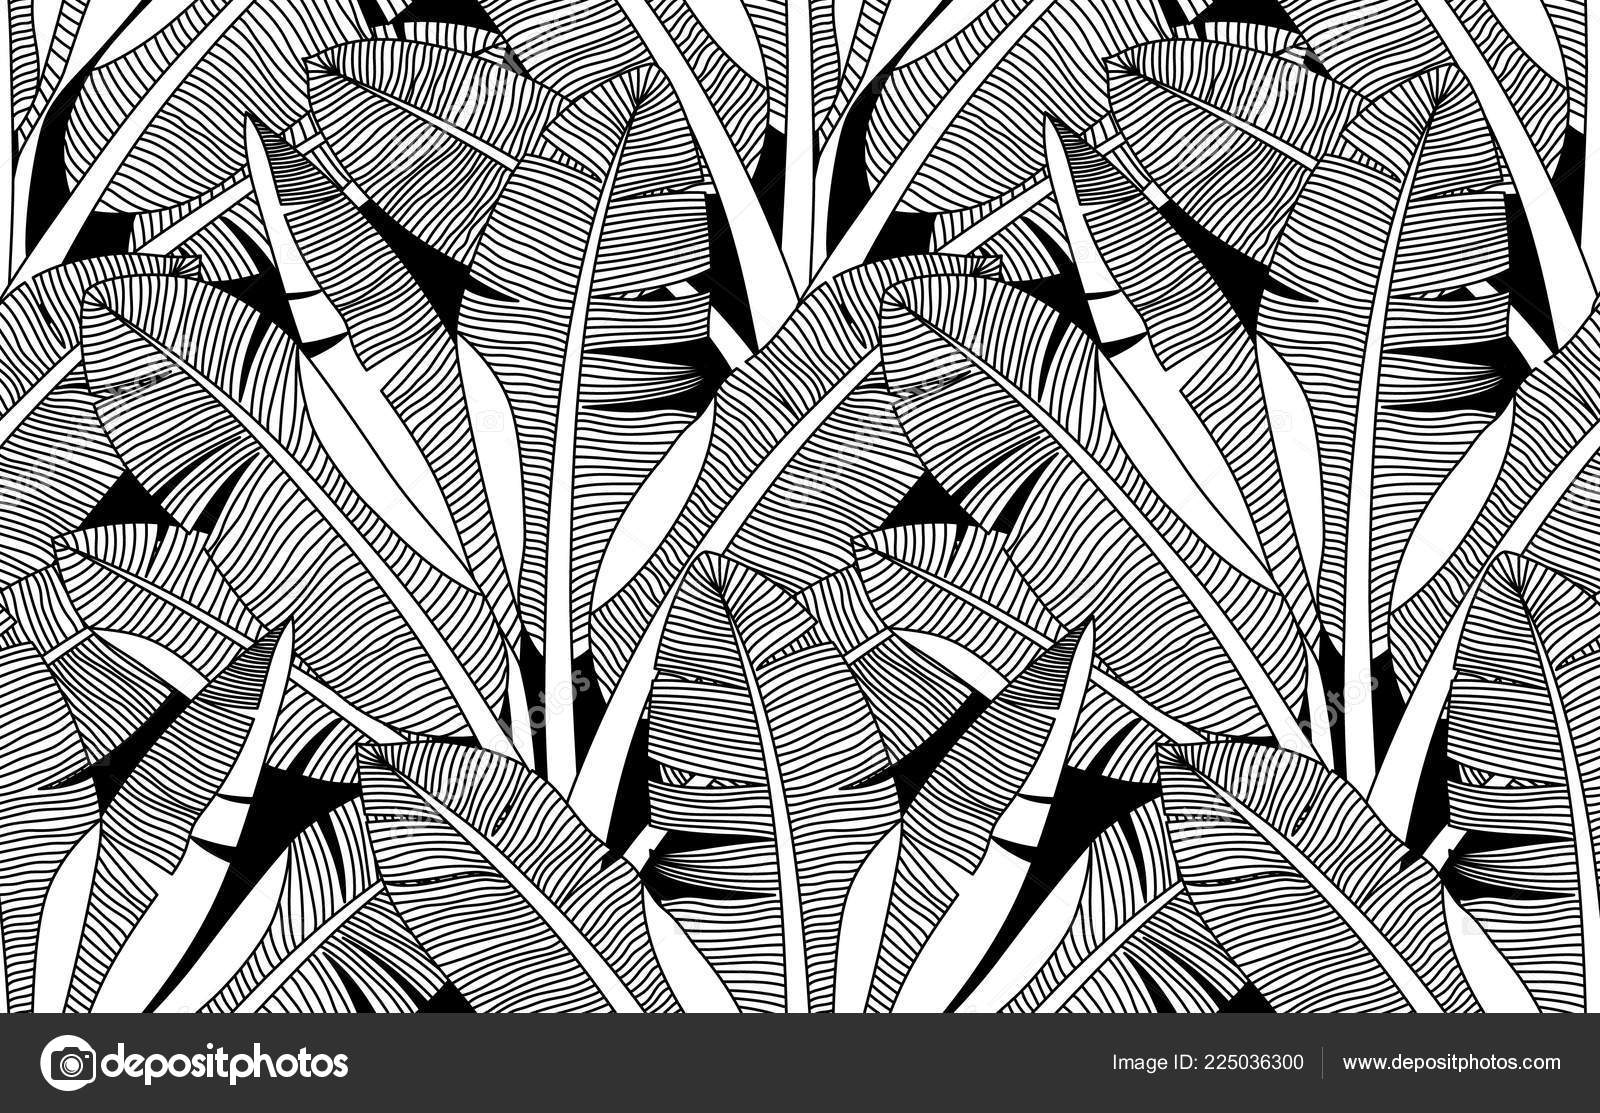 Jungle Exotic Palm Leaves Seamless Pattern Banana Leaf Vector Background Stock Vector C S 225036300 Download 21,000+ royalty free tropical leaves wallpaper vector images. https depositphotos com 225036300 stock illustration jungle exotic palm leaves seamless html